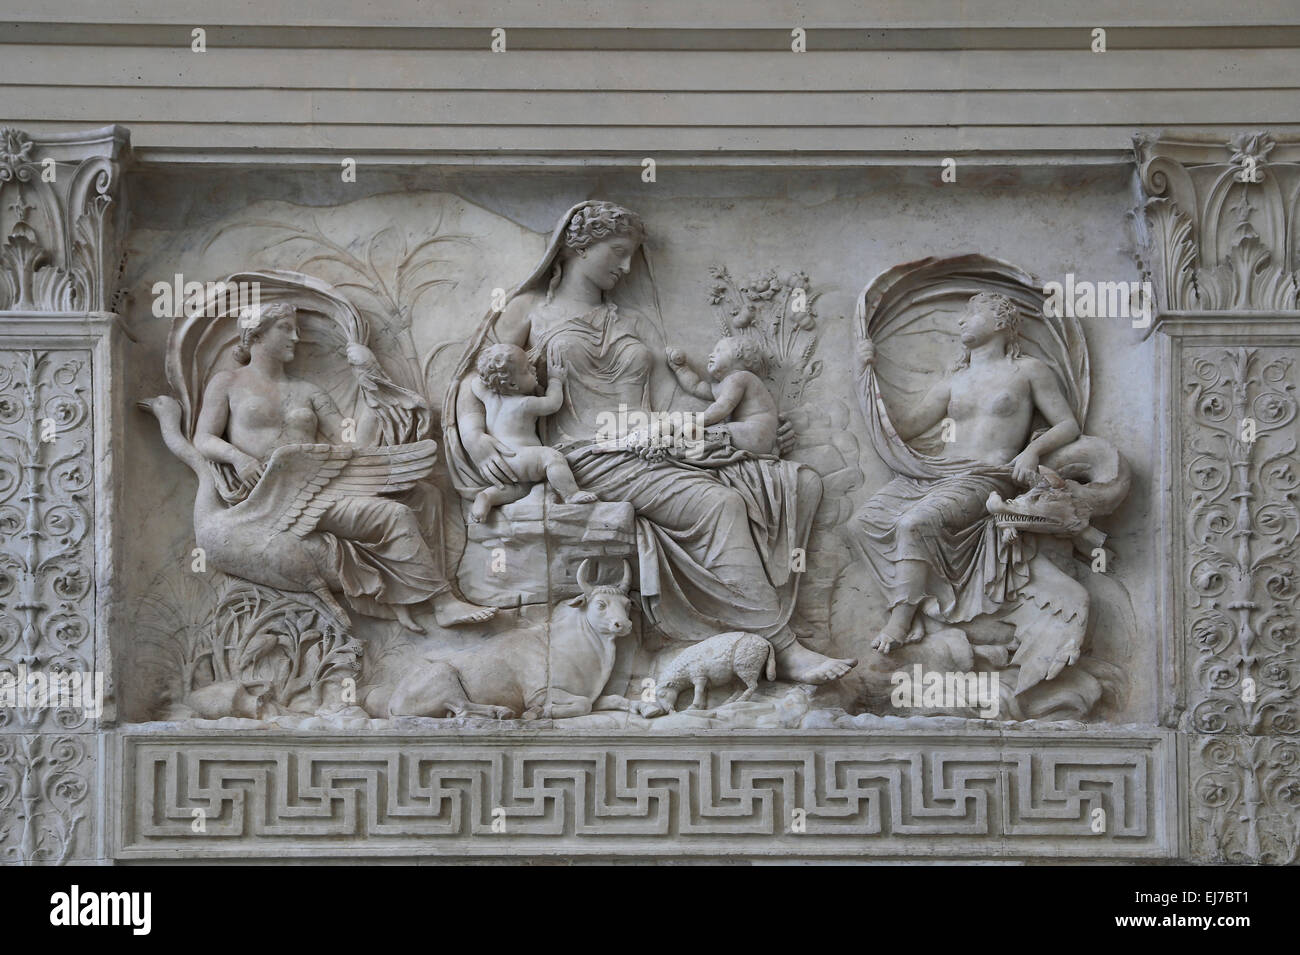 Italy. Rome. Ara Pacis Augustae. Goddess Tellus (Earth) sits amid a scene of fertility and prosperity with twins. - Stock Image